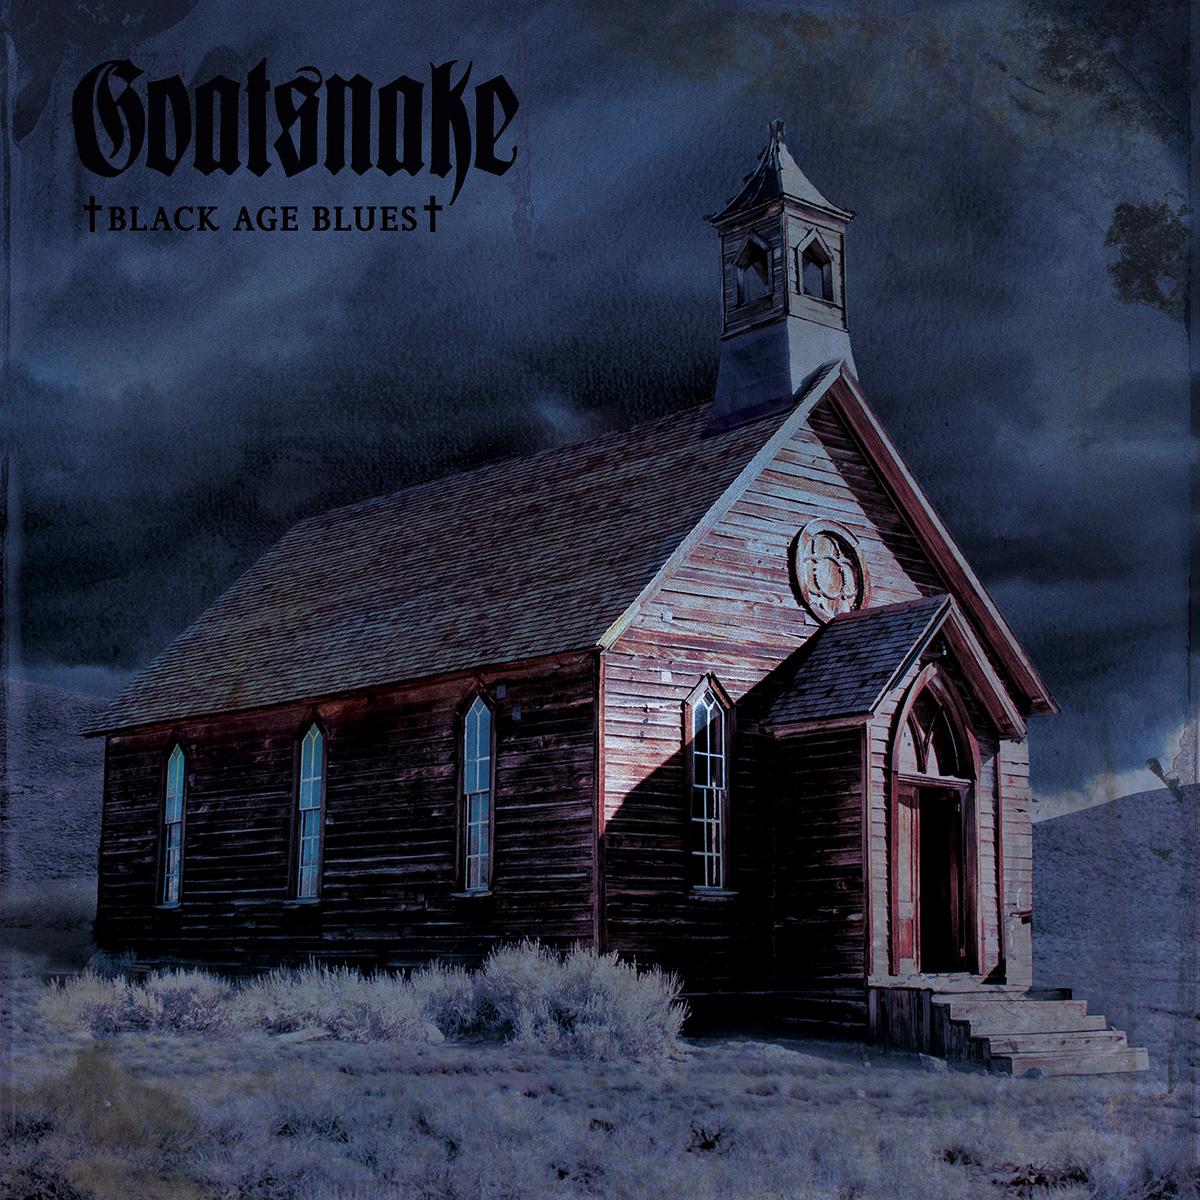 Goatsnake - Black Age Blues